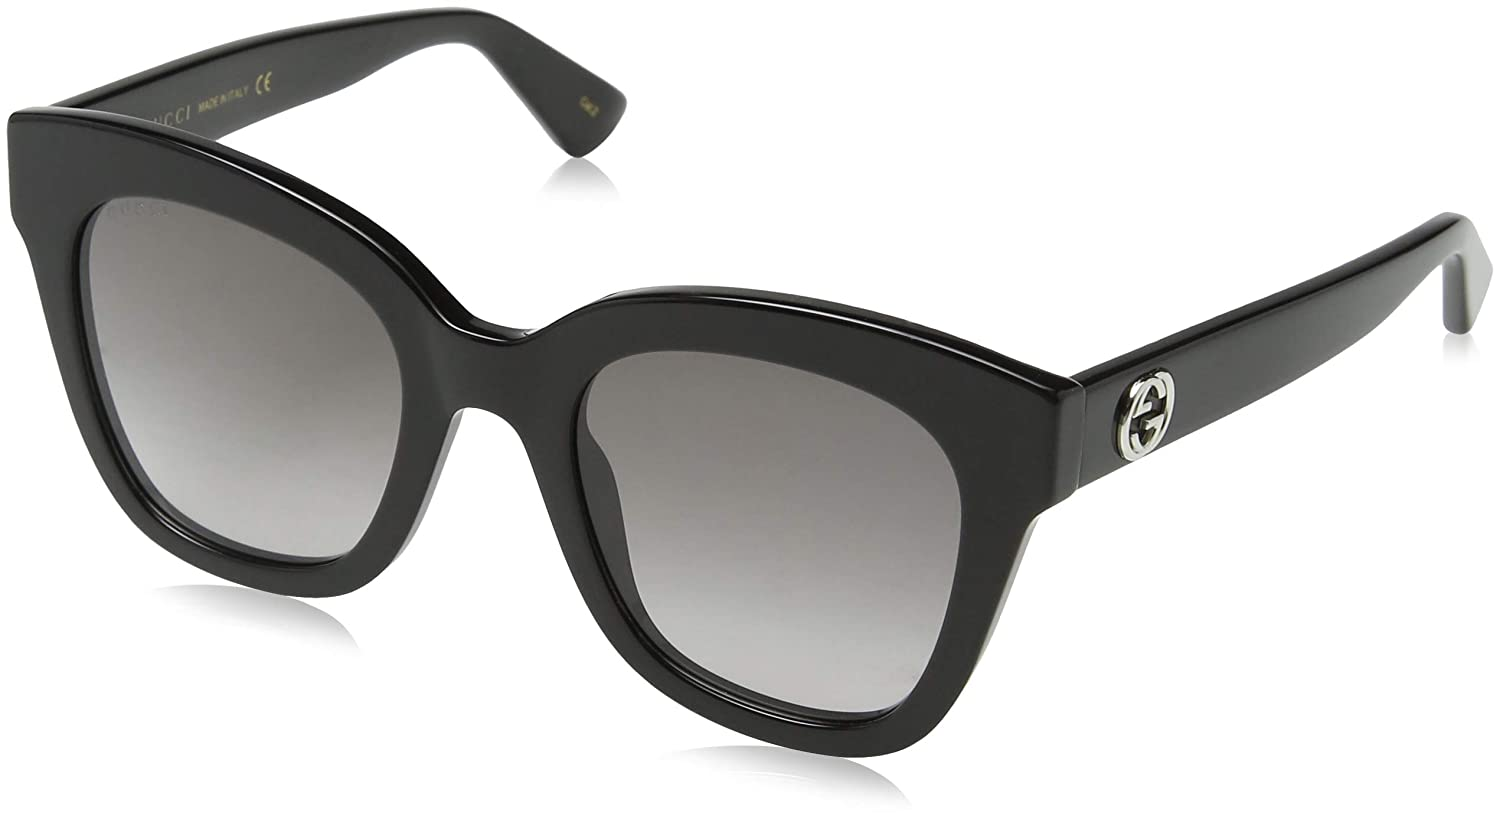 2e9716543a6 Amazon.com  Gucci GG0226S 001 Black Gold GG0226S Butterfly Sunglasses Lens  Category 2 Siz  Gucci  Clothing